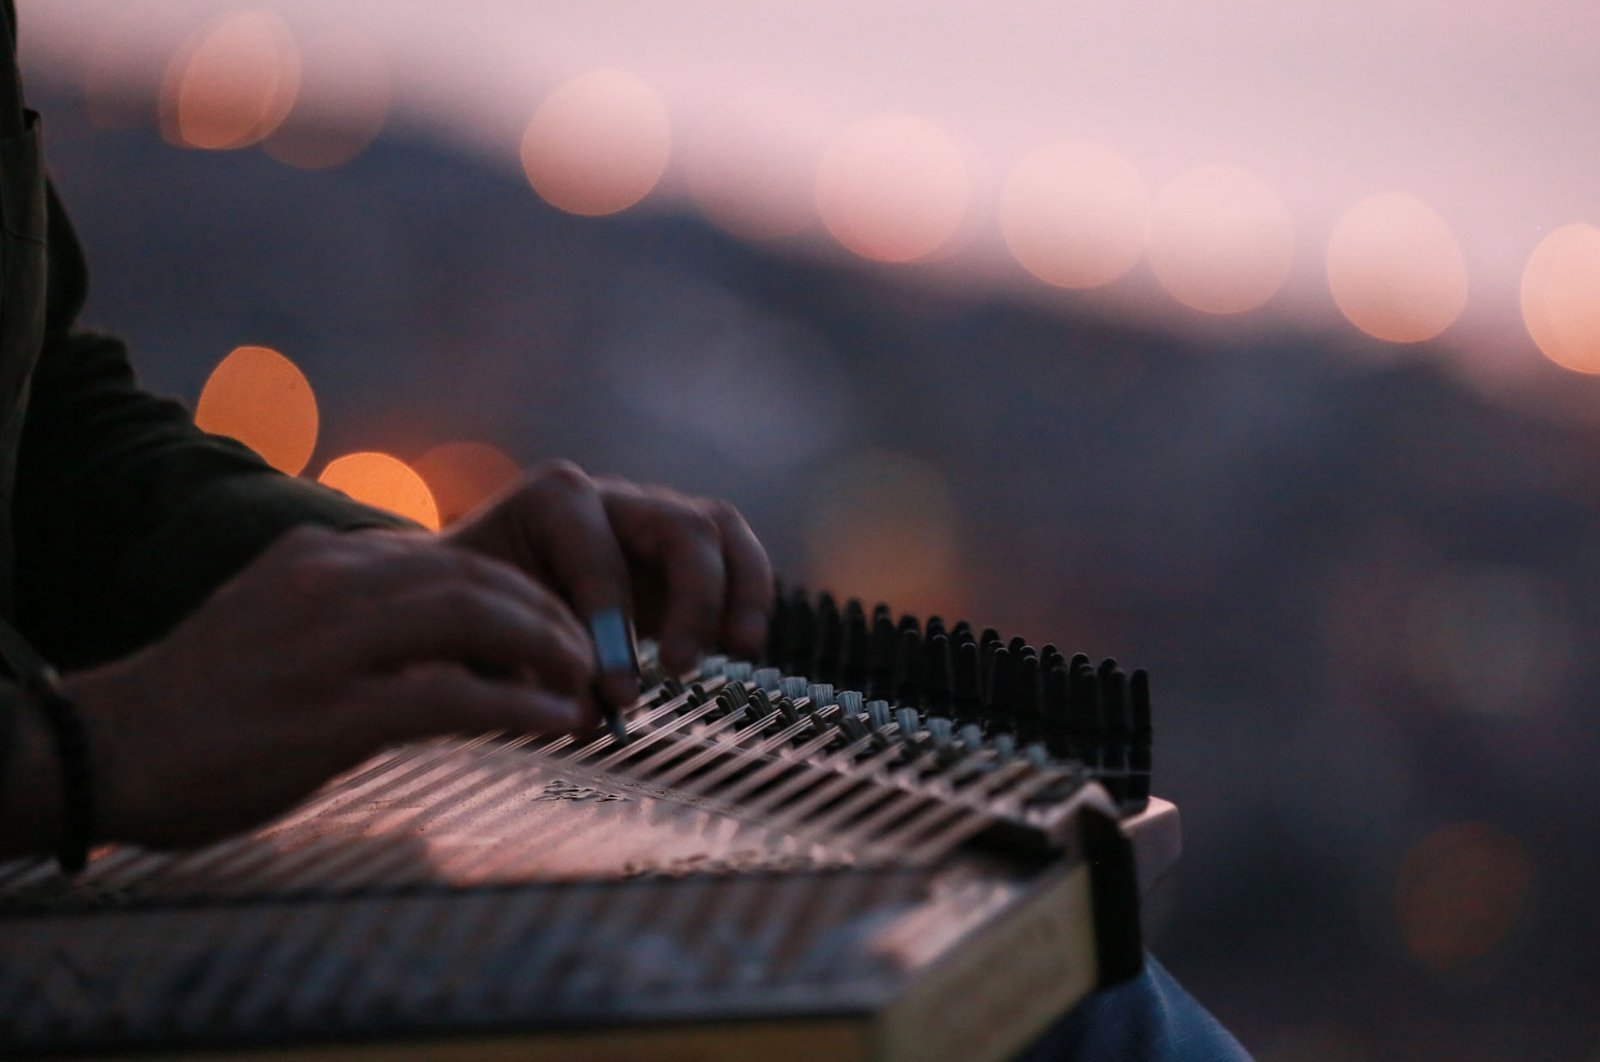 Inter Nations is hosting an online Turkish Traditional Music Festival, featuring instruments such as the Turkish kanun (pictured). (Shutterstock Photo)